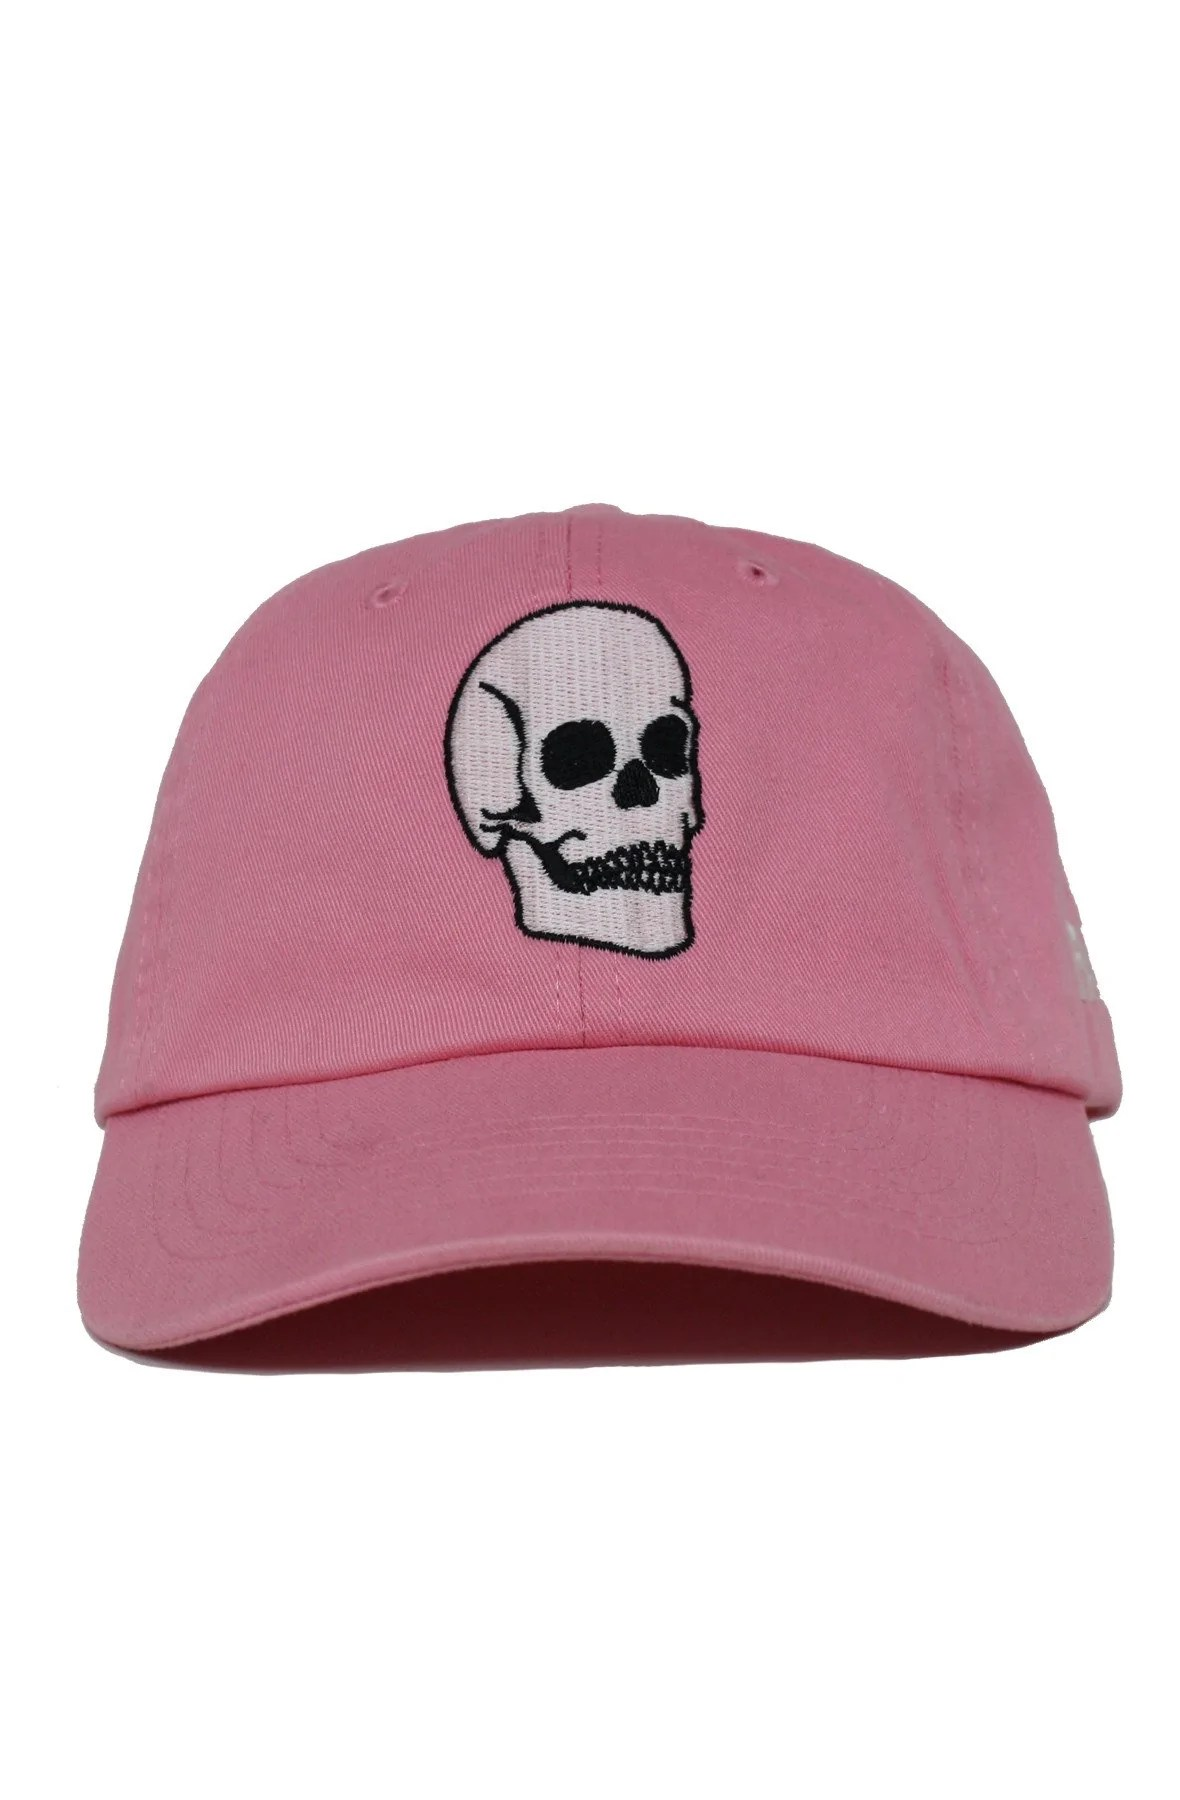 25193035e3721 Faded Pink Skull Dad Hat Faded Royalty